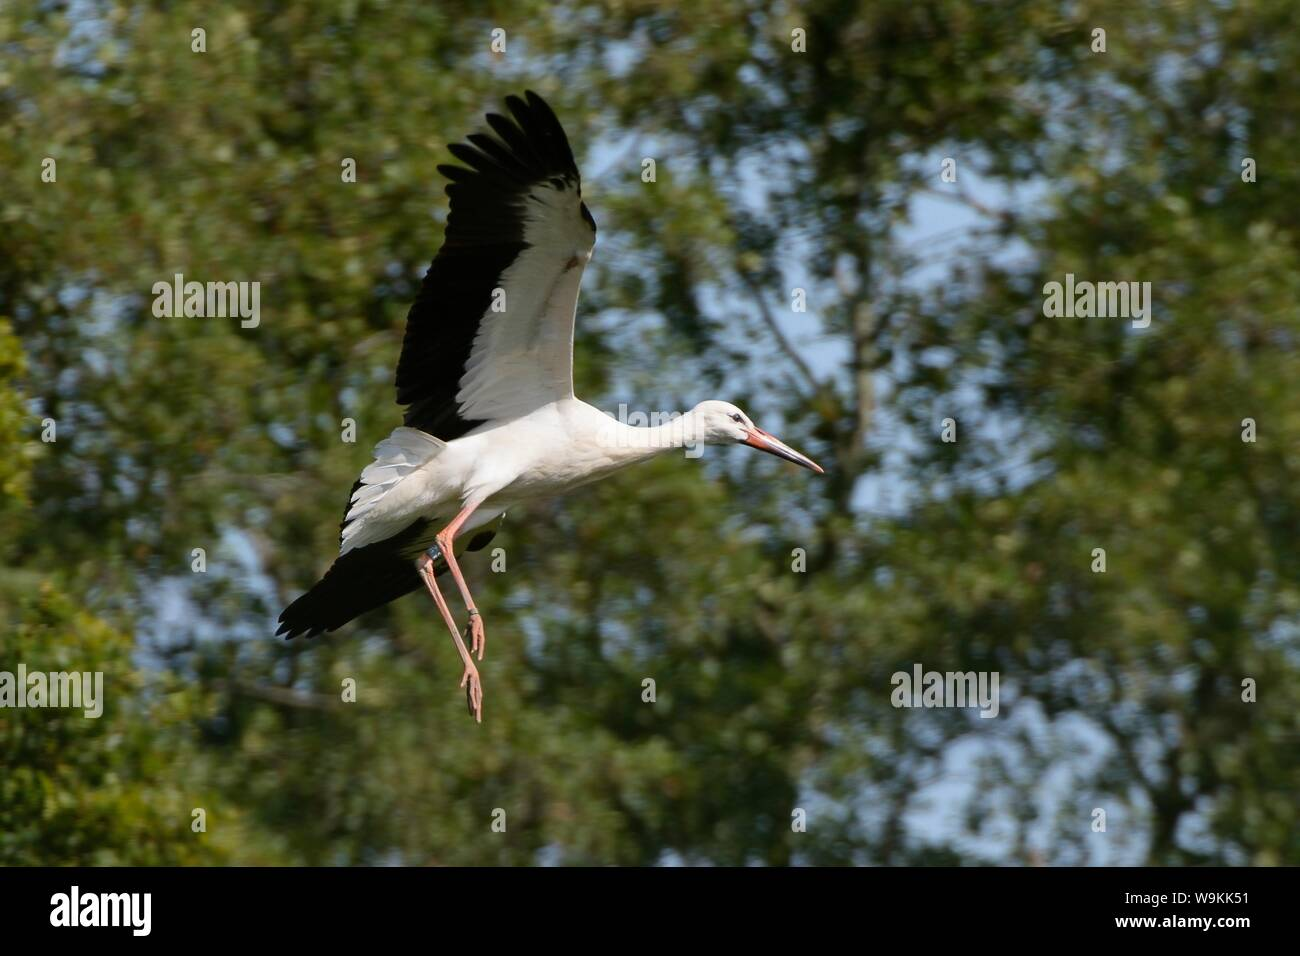 Captive reared juvenile White stork (Ciconia ciconia) flying from a temporary holding pen on release day on the Knepp Estate, Sussex, UK, August 2019. Stock Photo